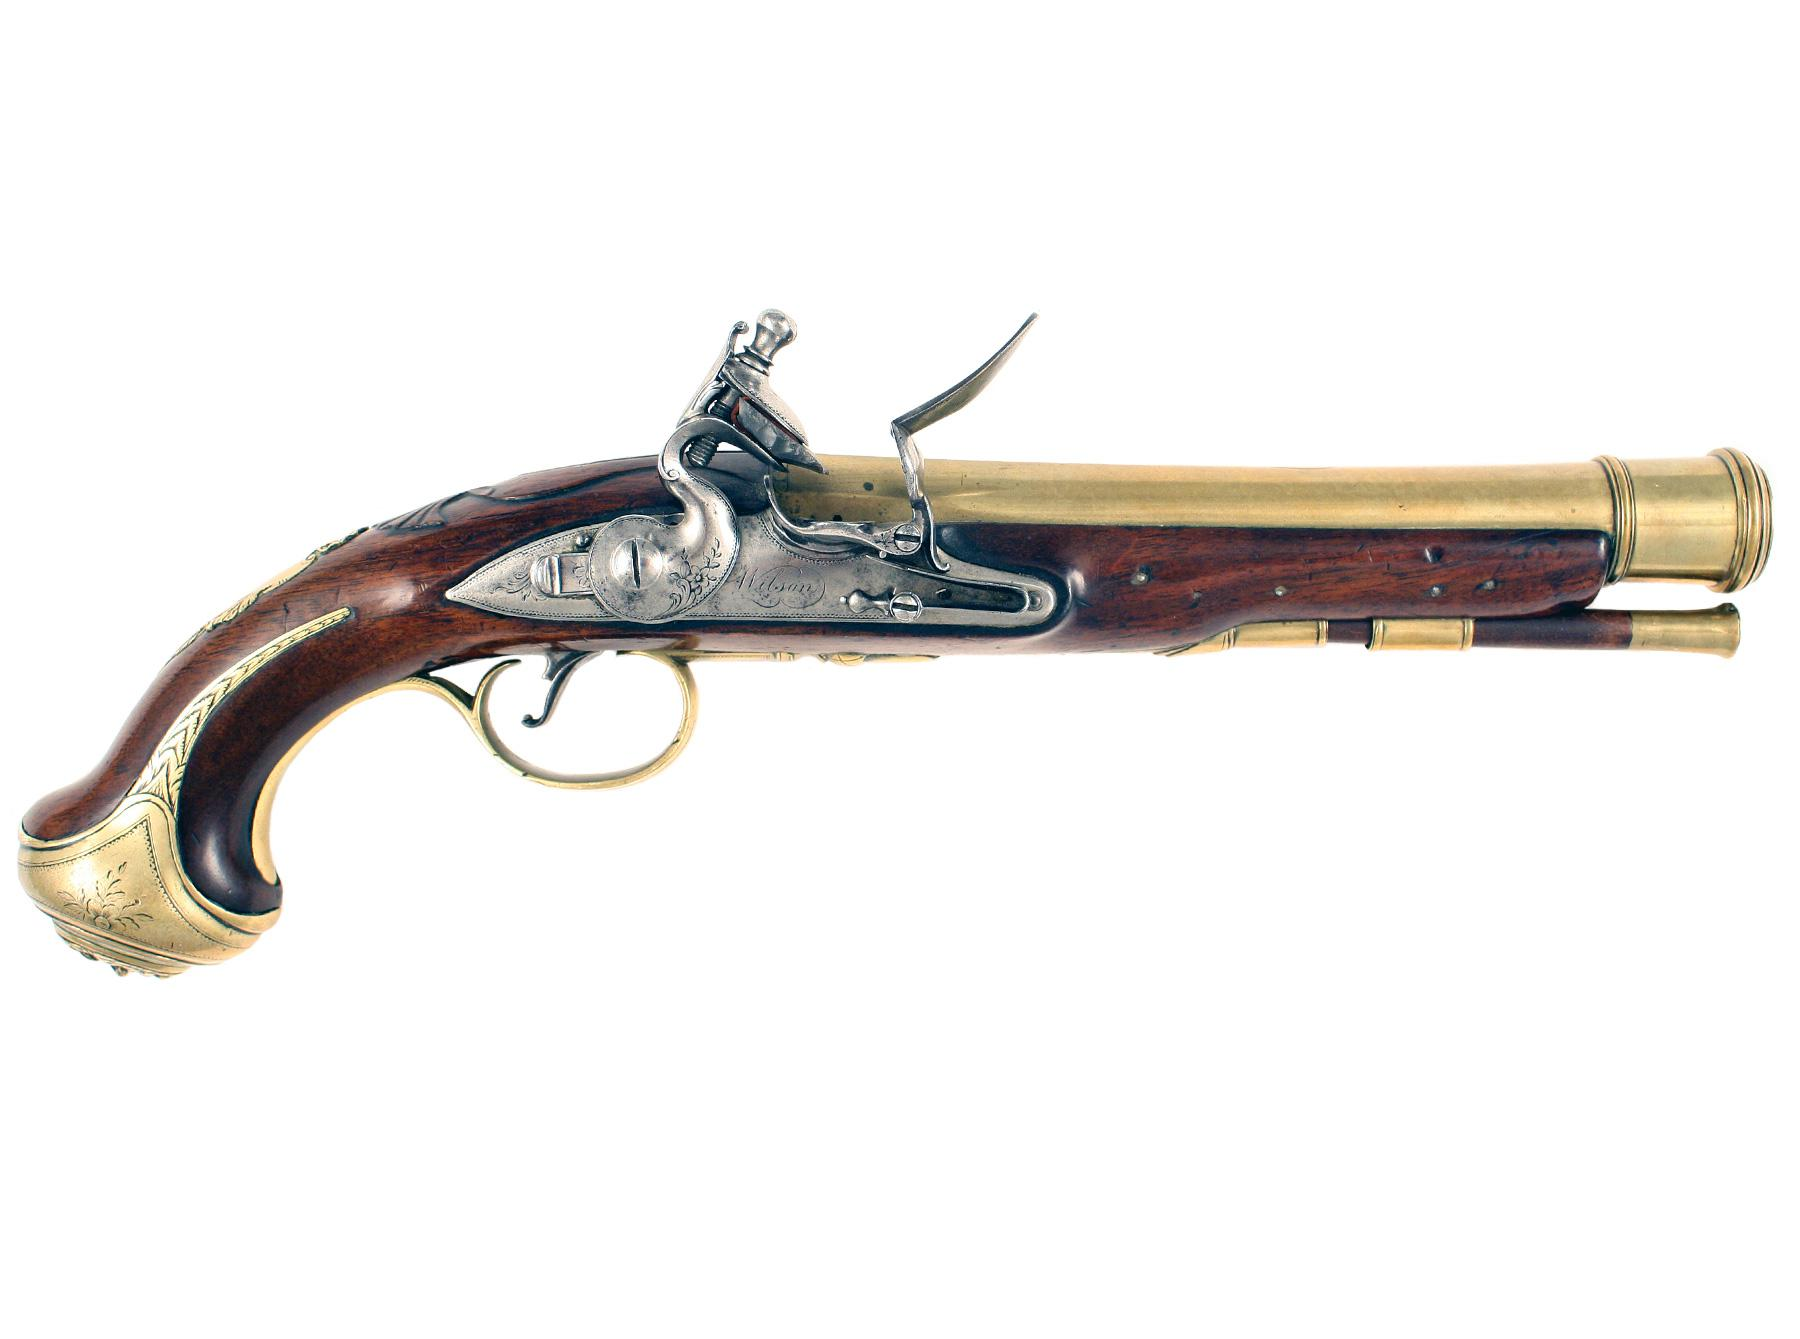 An Outstanding Flintlock Blunderbuss Pistol